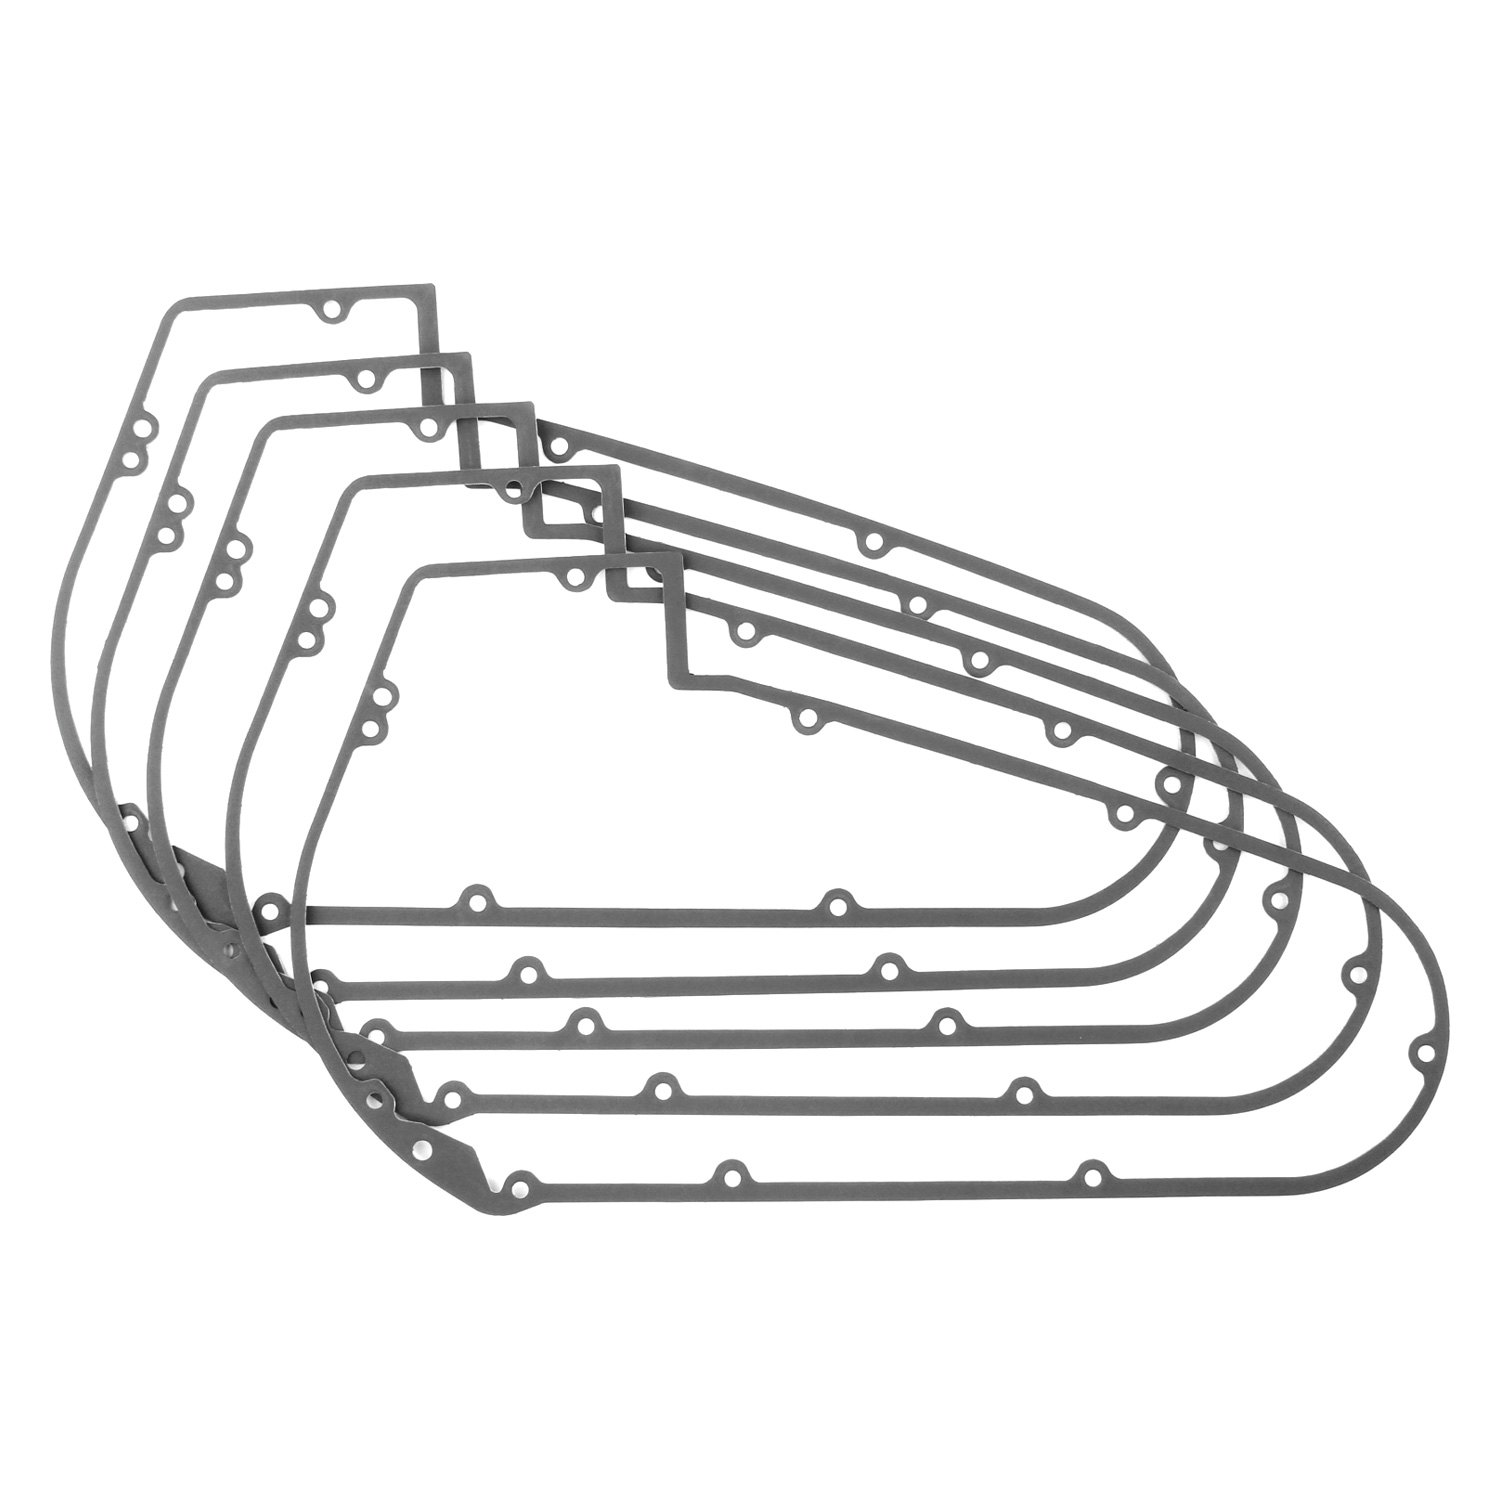 For Harley-Davidson Heritage Softail 86-88 Cometic Gasket